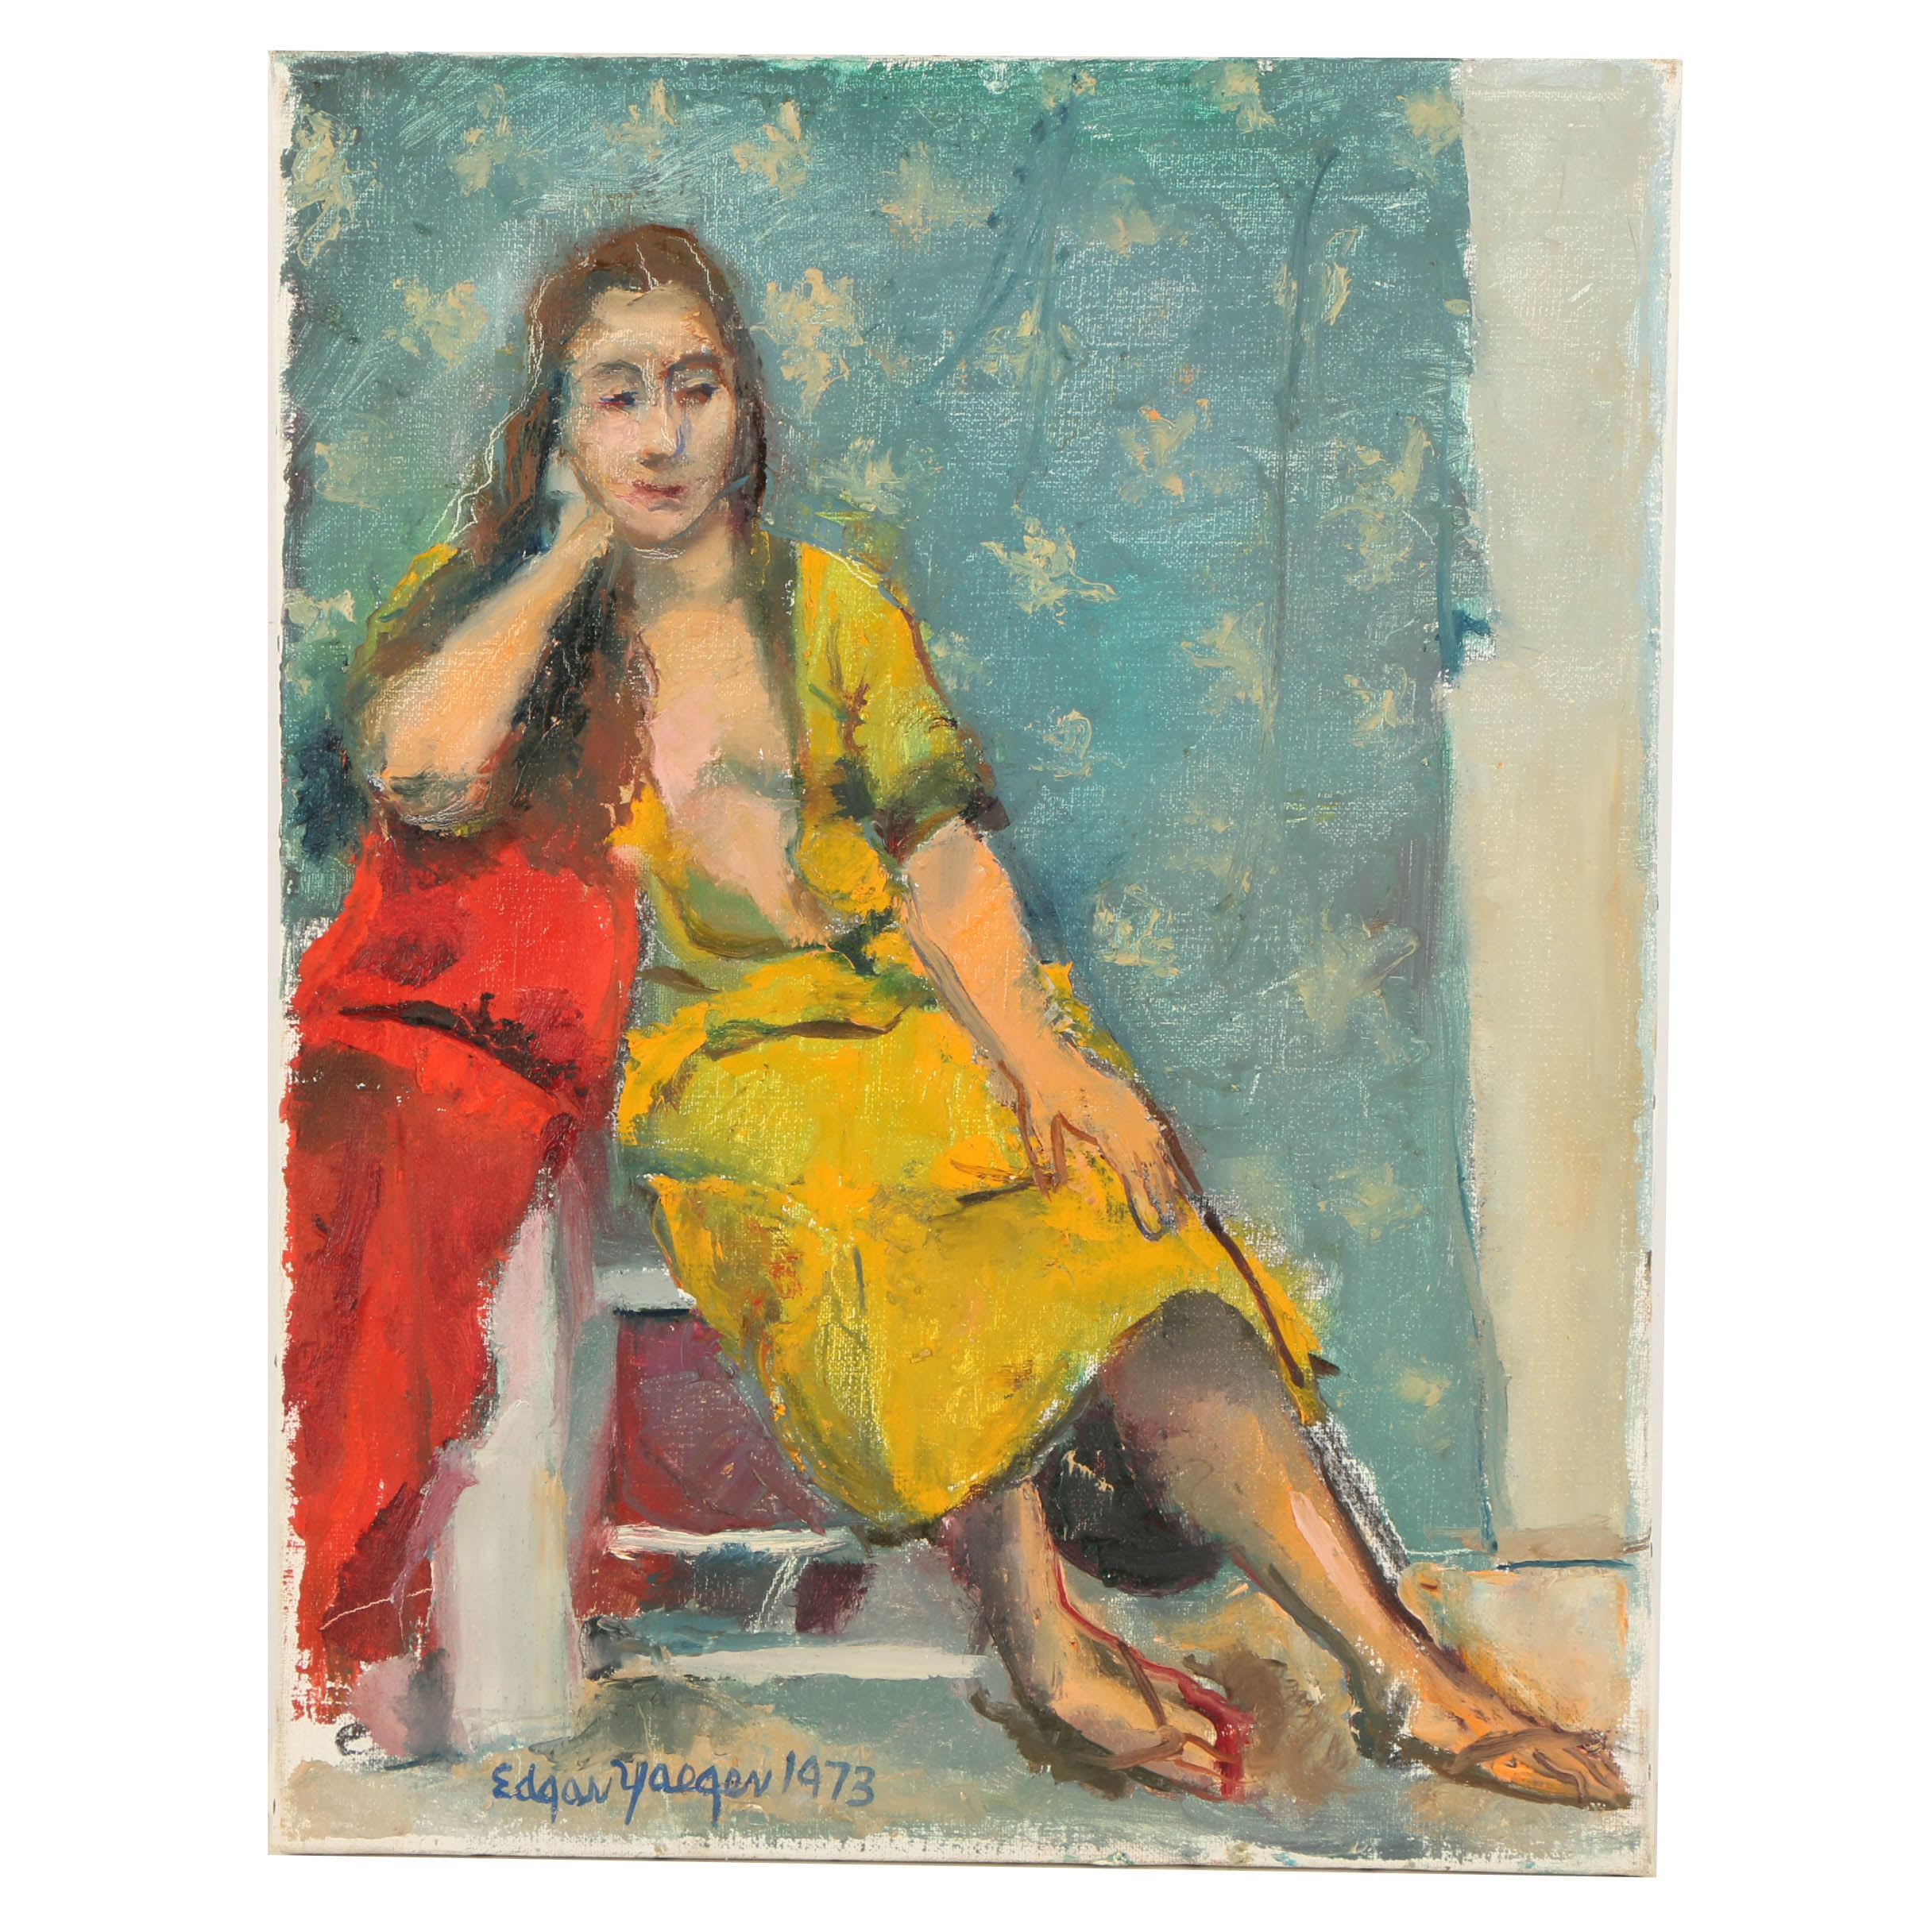 Edgar Yaeger Oil Painting on Canvas of a Woman in a Yellow Dress